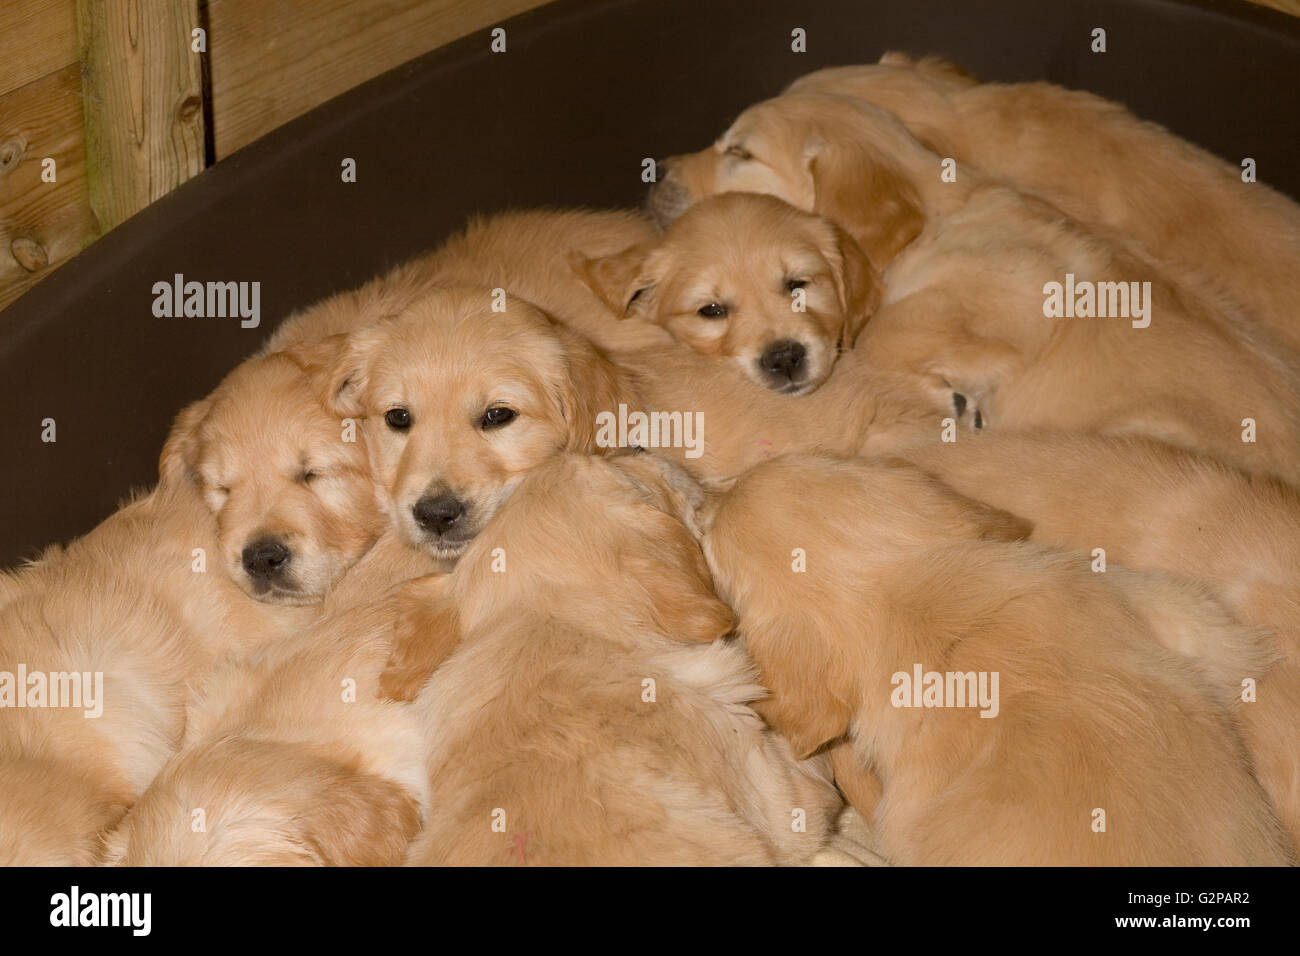 Golden retriever puppies snug in a plastic dog basket - Stock Image